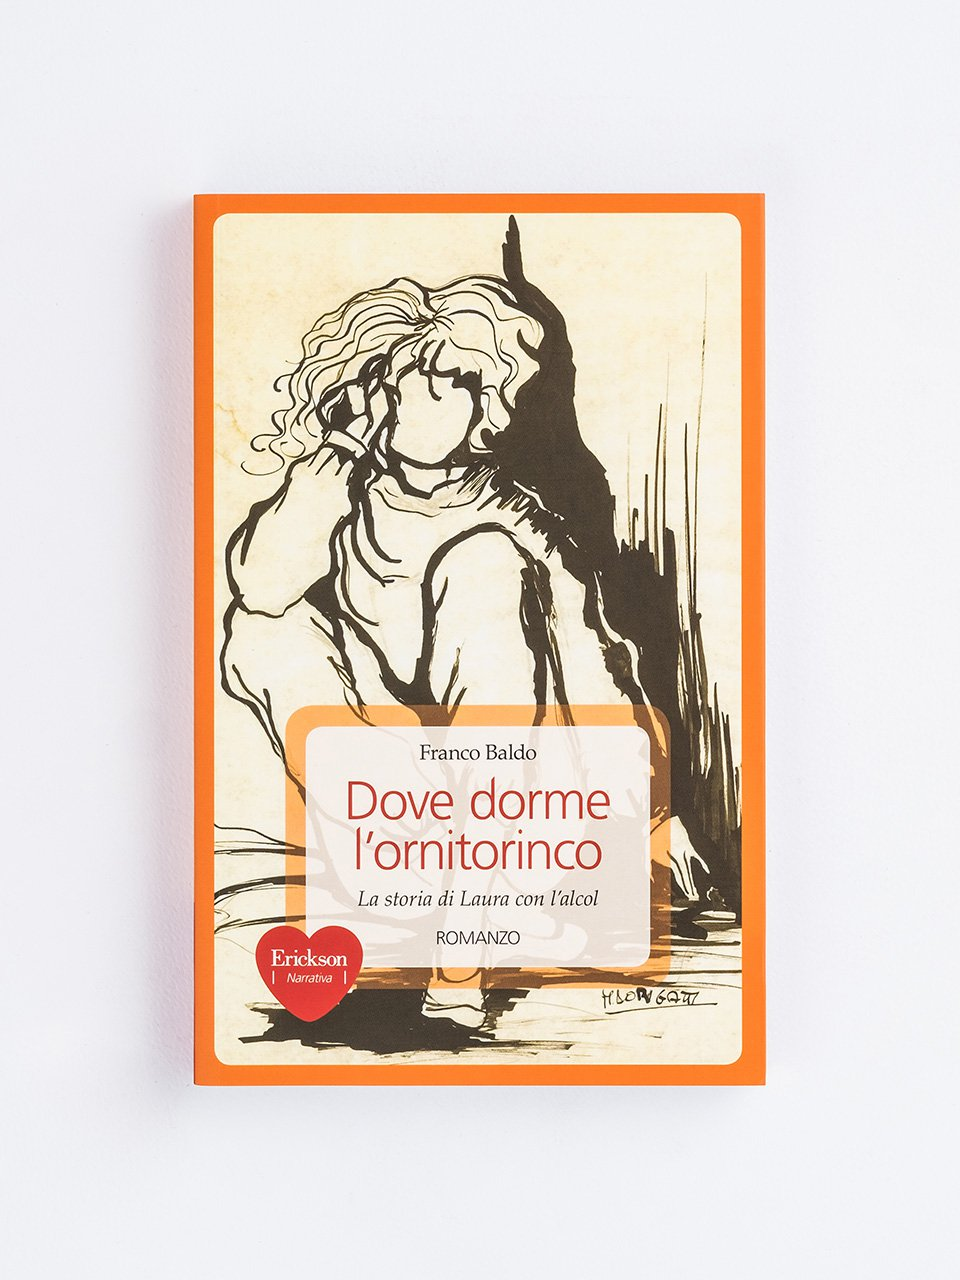 Dove dorme l'ornitorinco - Come facilitare una Family group conference - Libri - Erickson